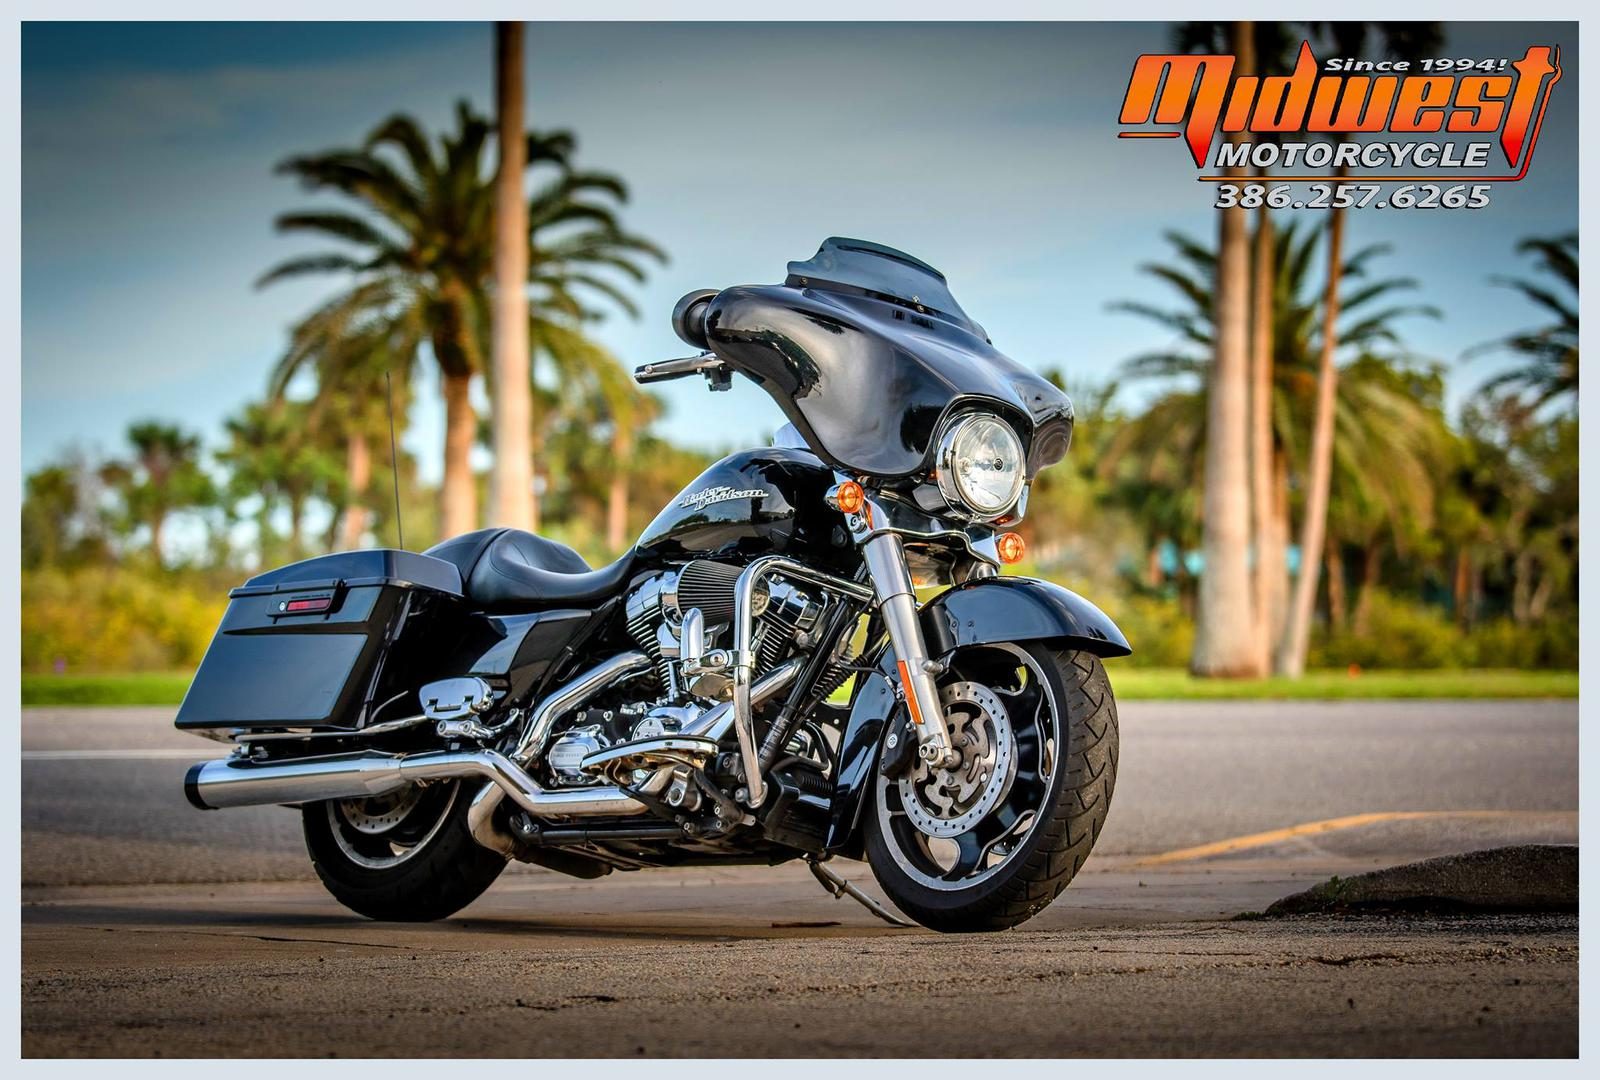 2013 Harley Davidson Street Glide For Sale In Daytona Beach Fl Home Data Cable Wiring Together With Brake Cables And 16463202 1231058556975335 1169946165851832239 O 16112841 1231055363642321 5836556746498055068